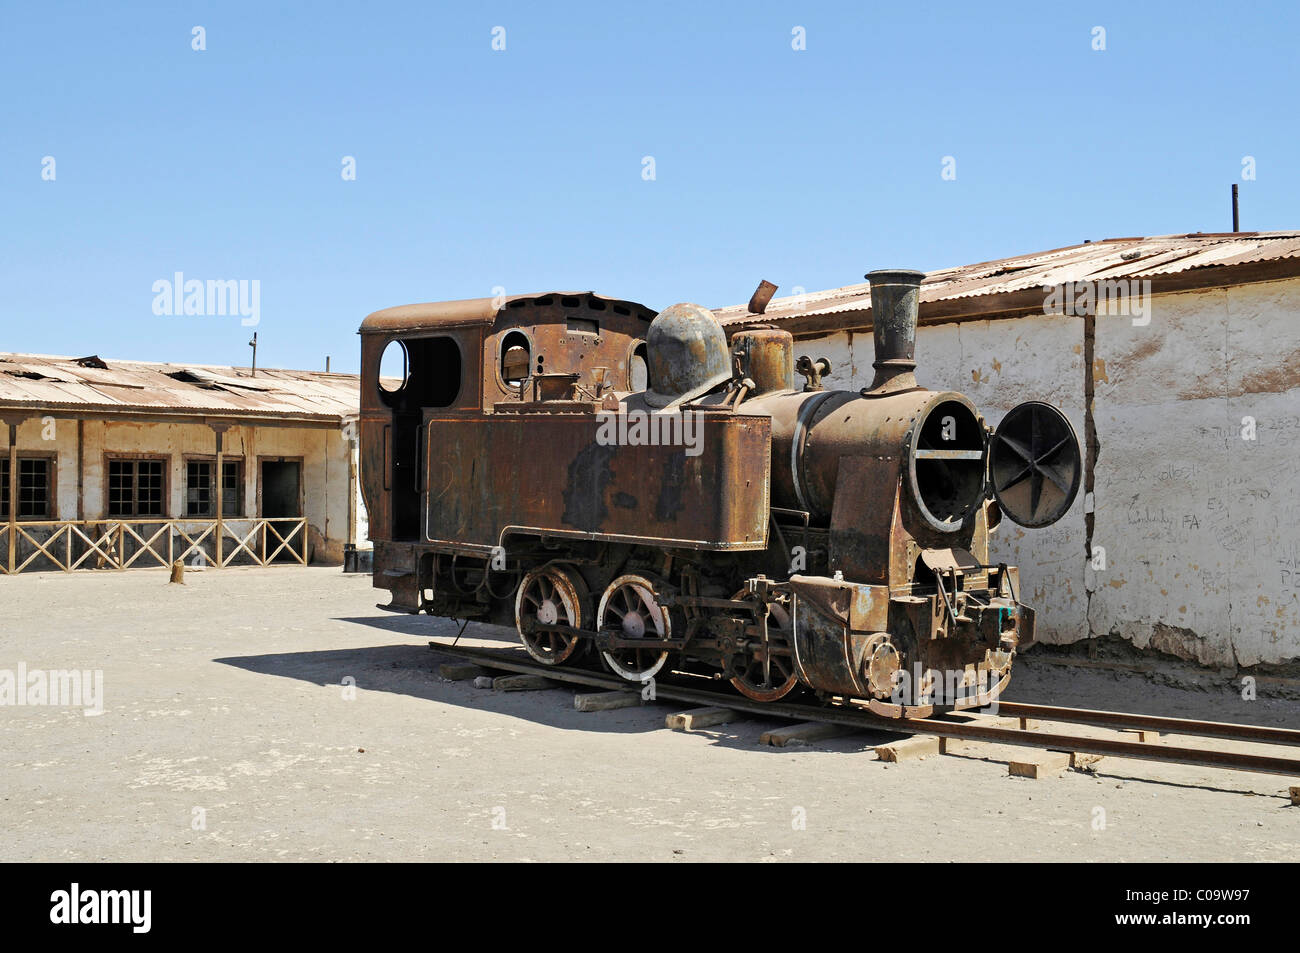 Locomotive, train, Humberstone, salpetre works, abandoned salpetre town, ghost town, desert, museum, UNESCO World - Stock Image